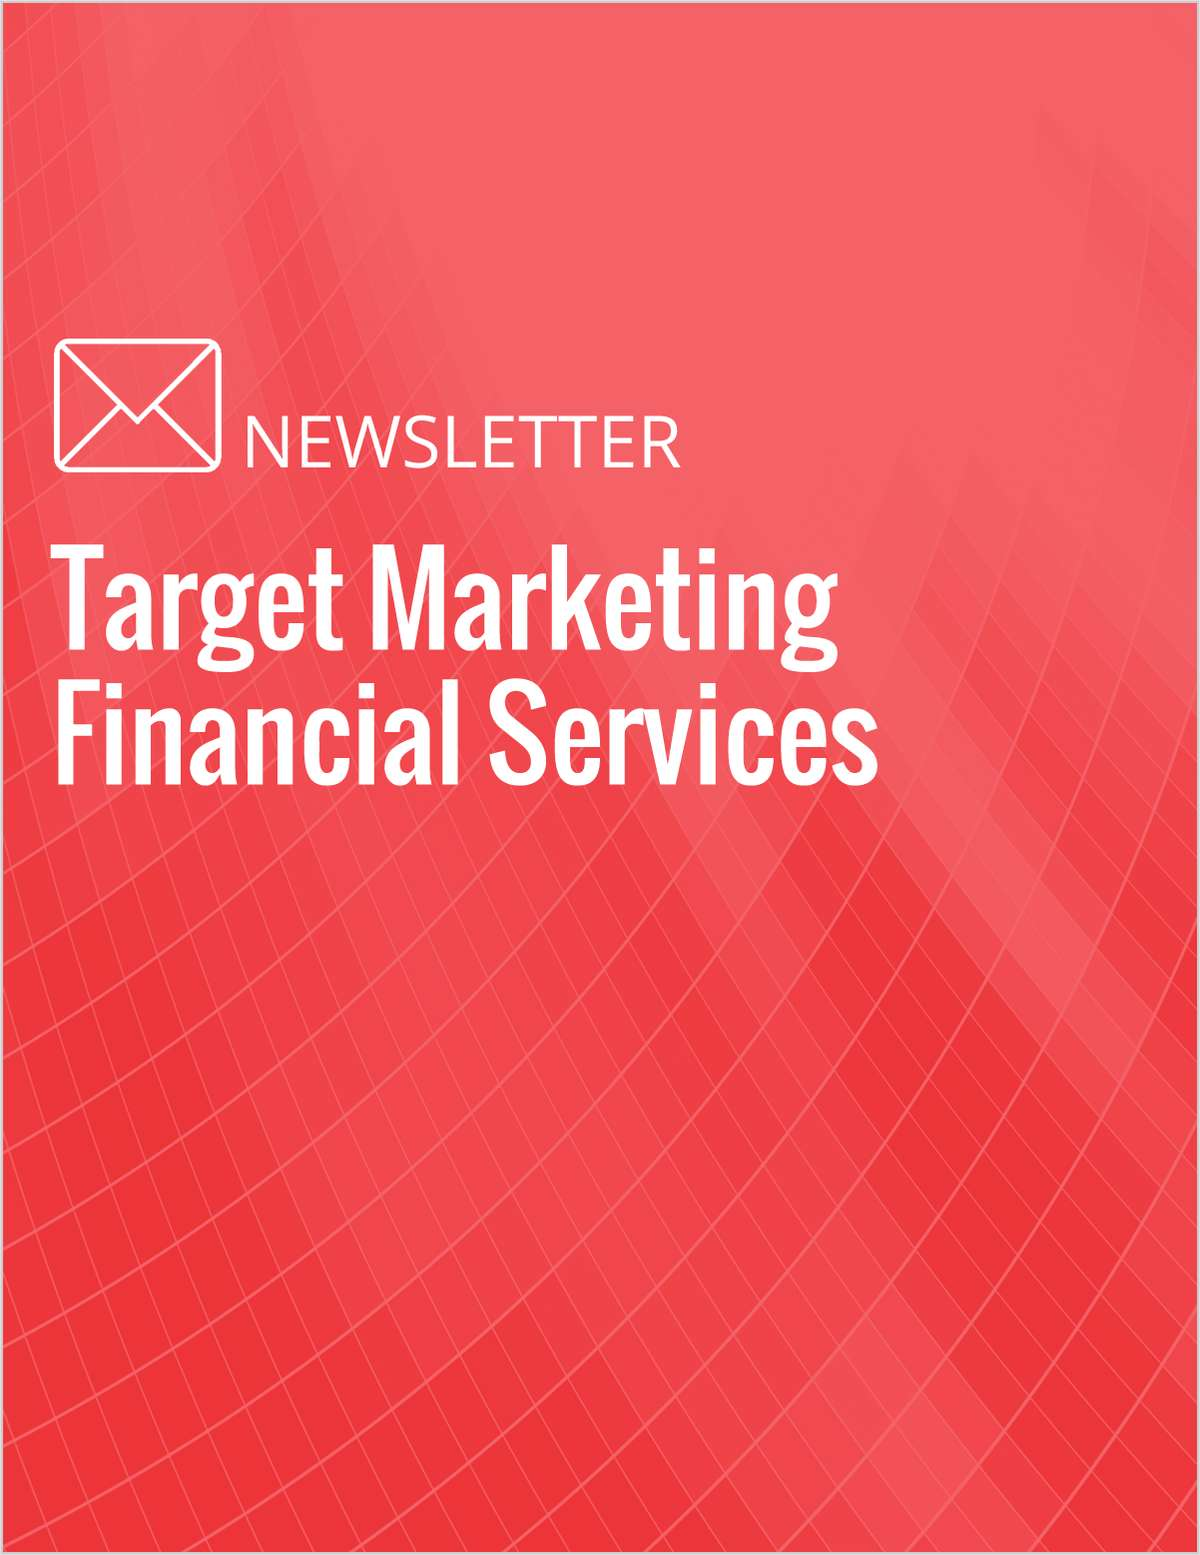 Target Marketing Financial Services